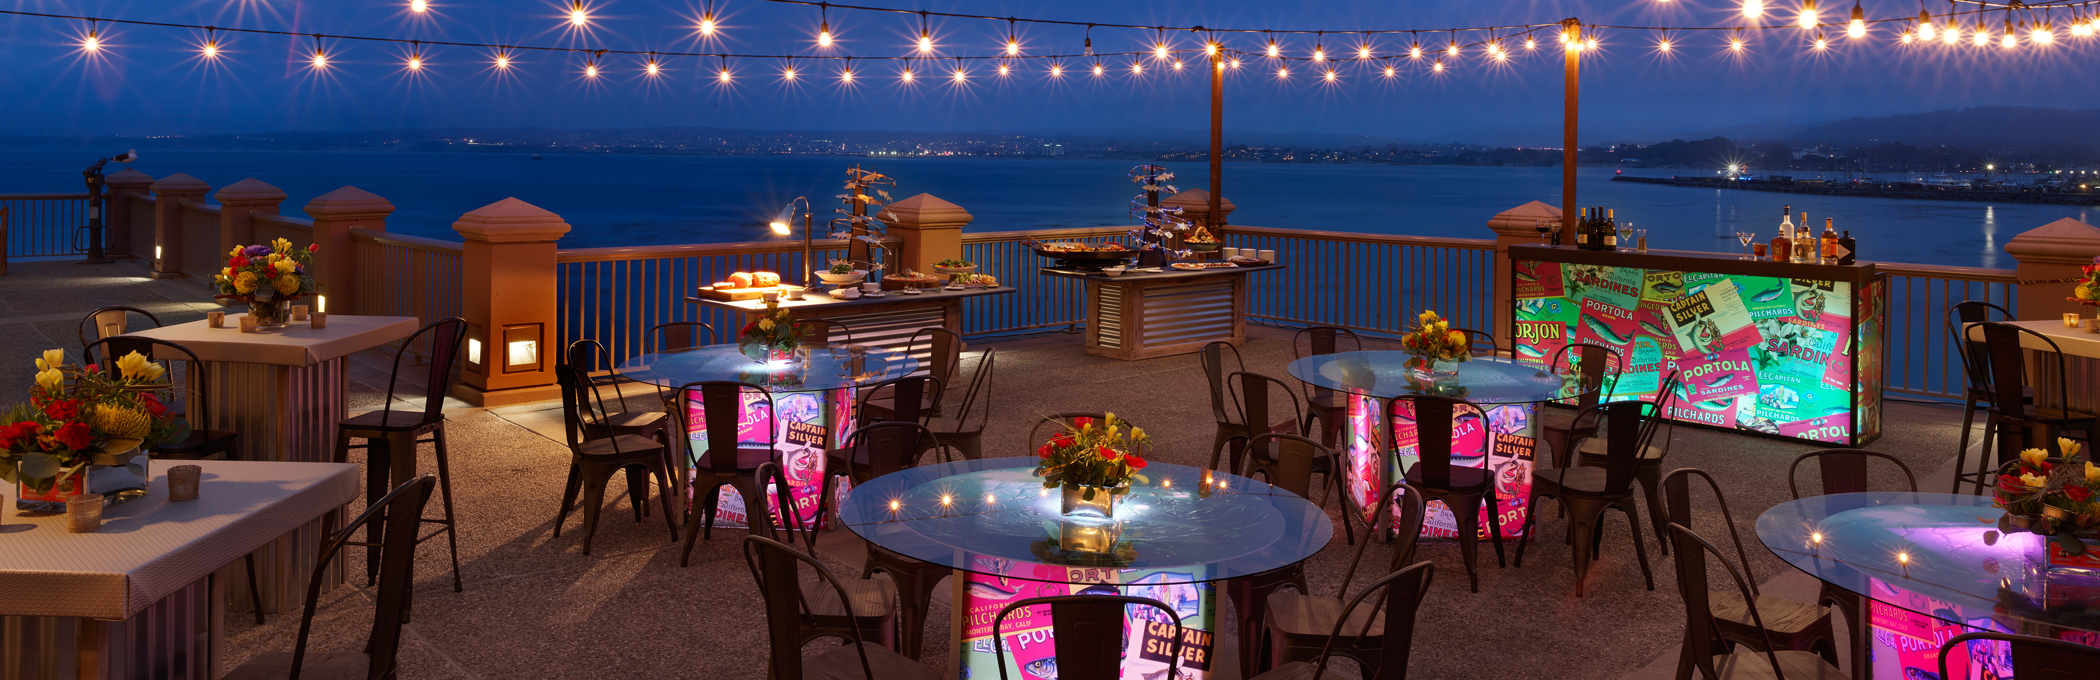 nighttime patio event with round tables, twinkle lights and black chairs